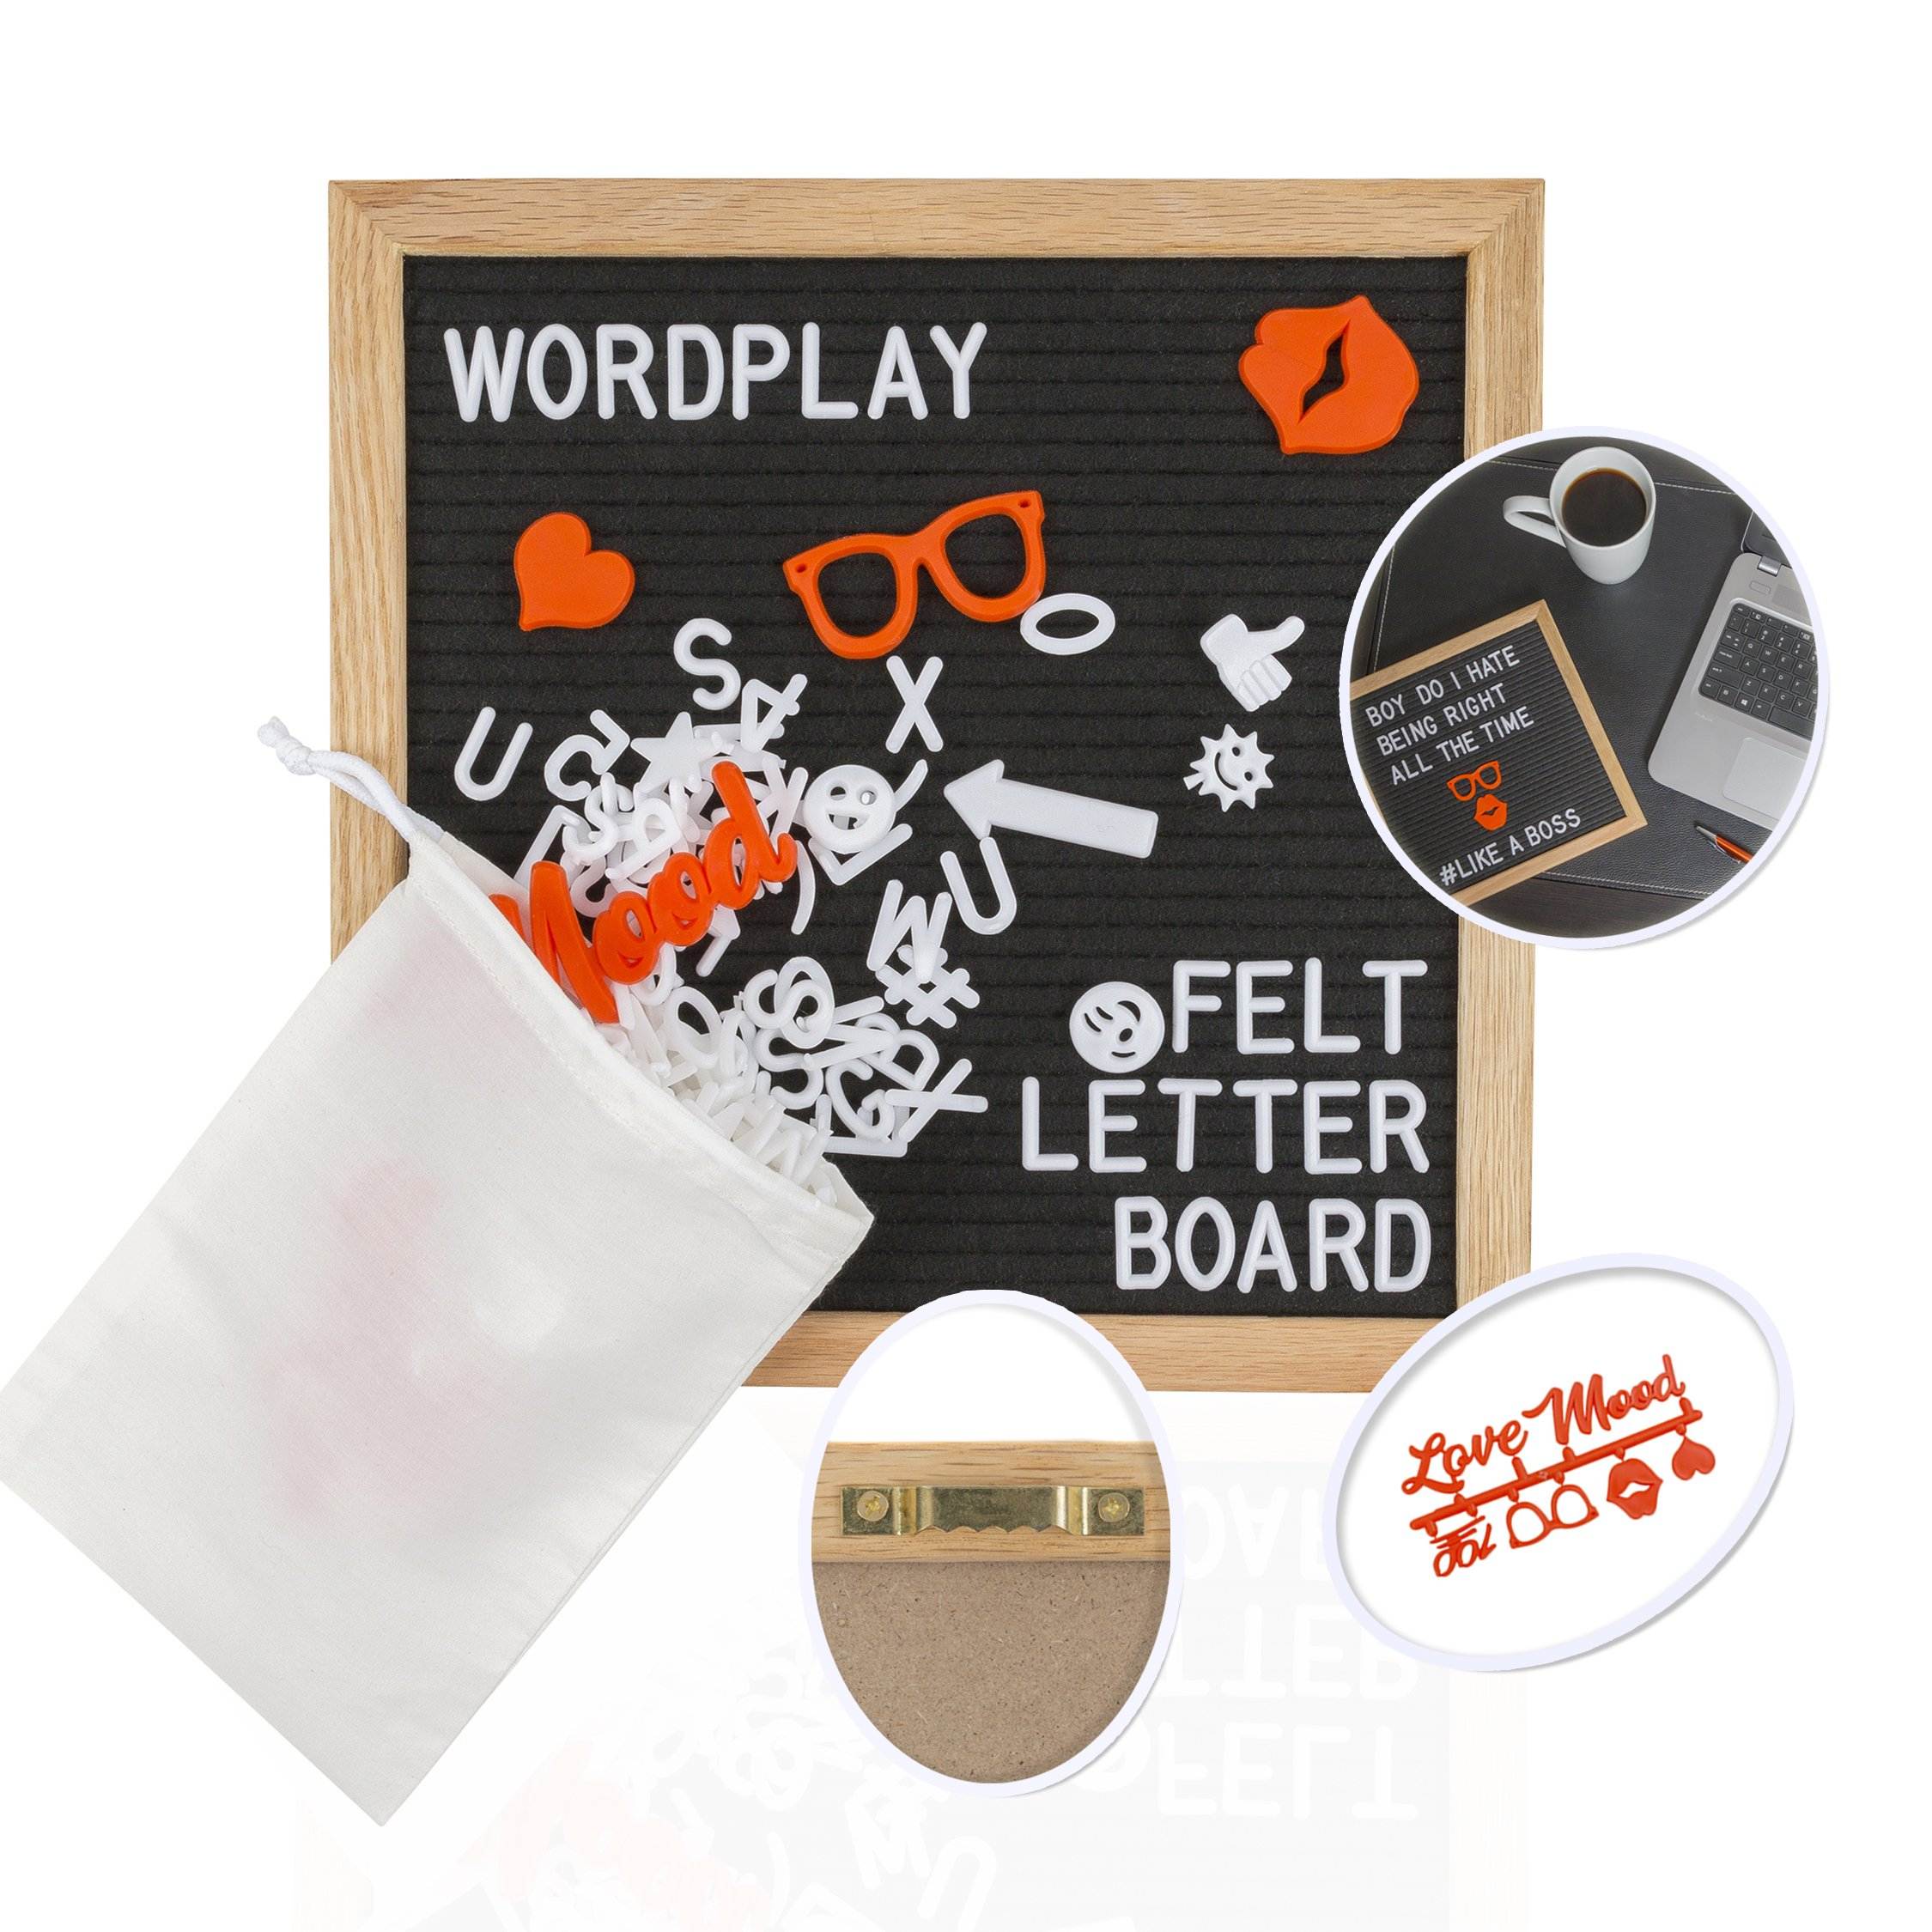 Changeable Felt Letter Board, 10x10 inch w/Emoji Stickers - Black Message Board on Rustic Oak Frame w/White Alphabet & Number Sets on Small Framed Customizable Letterboard Sign by Wordplay Creations